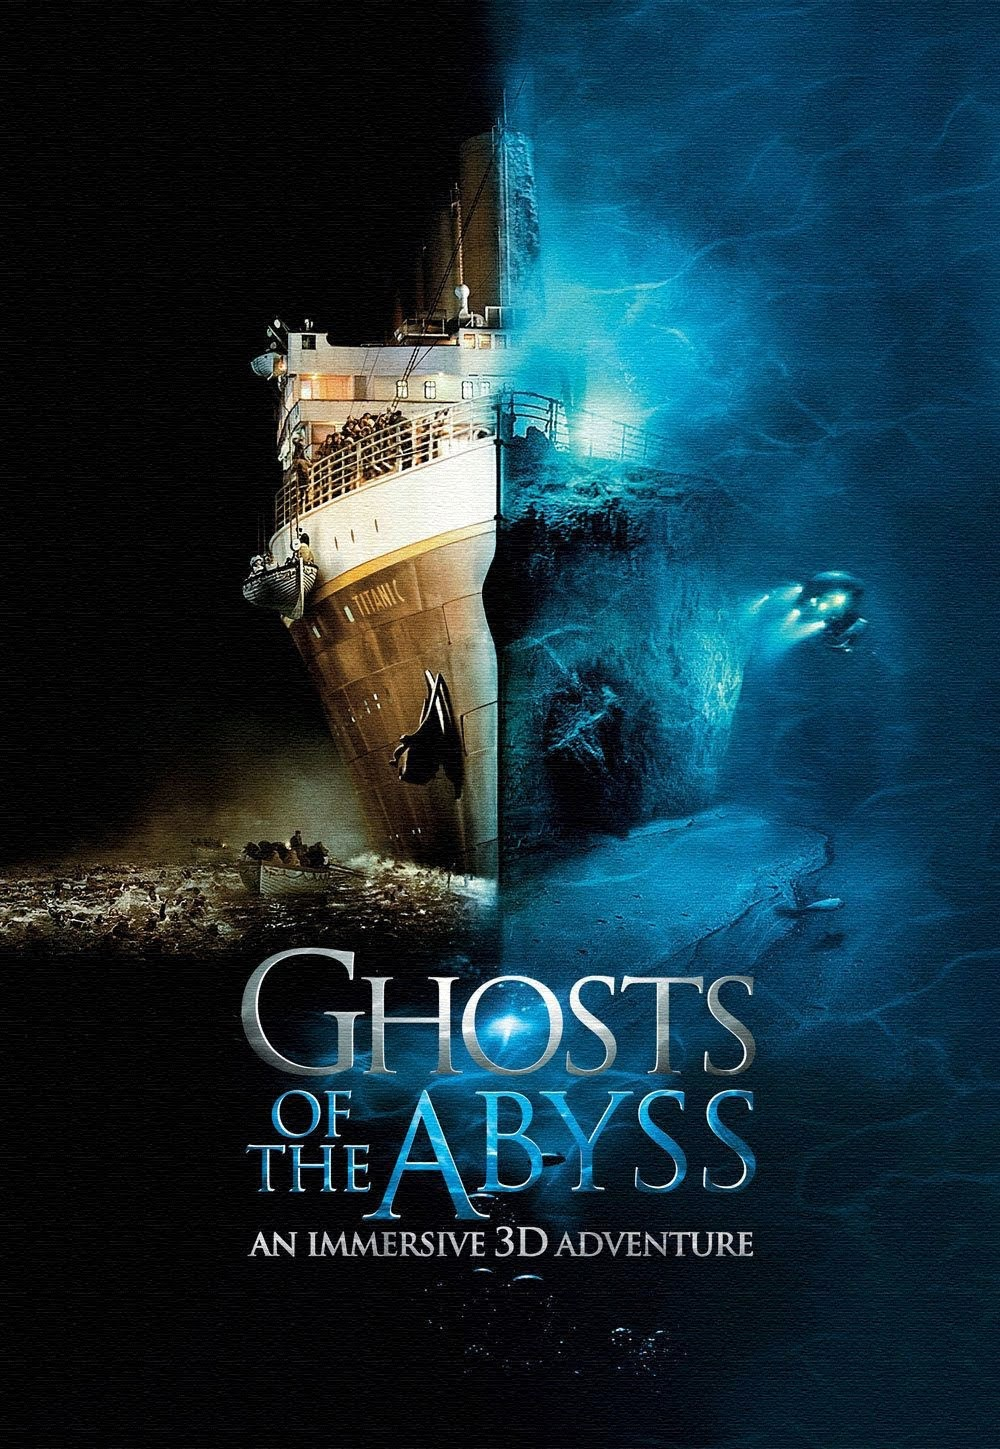 Ghost of the Abyss film poster